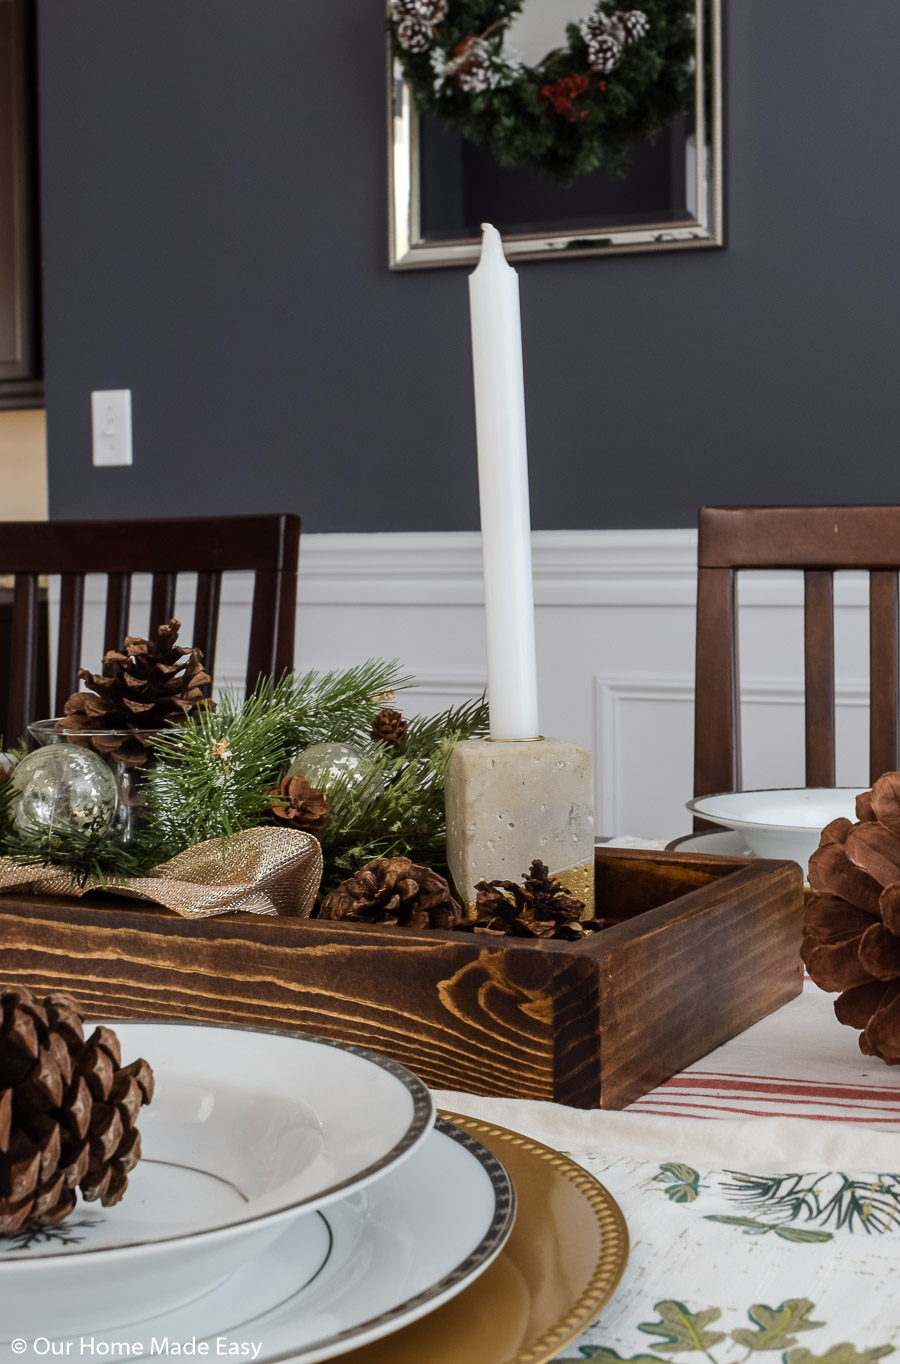 Our dining room table Christmas centerpiece has candlesticks, pinecones, and faux fir branches